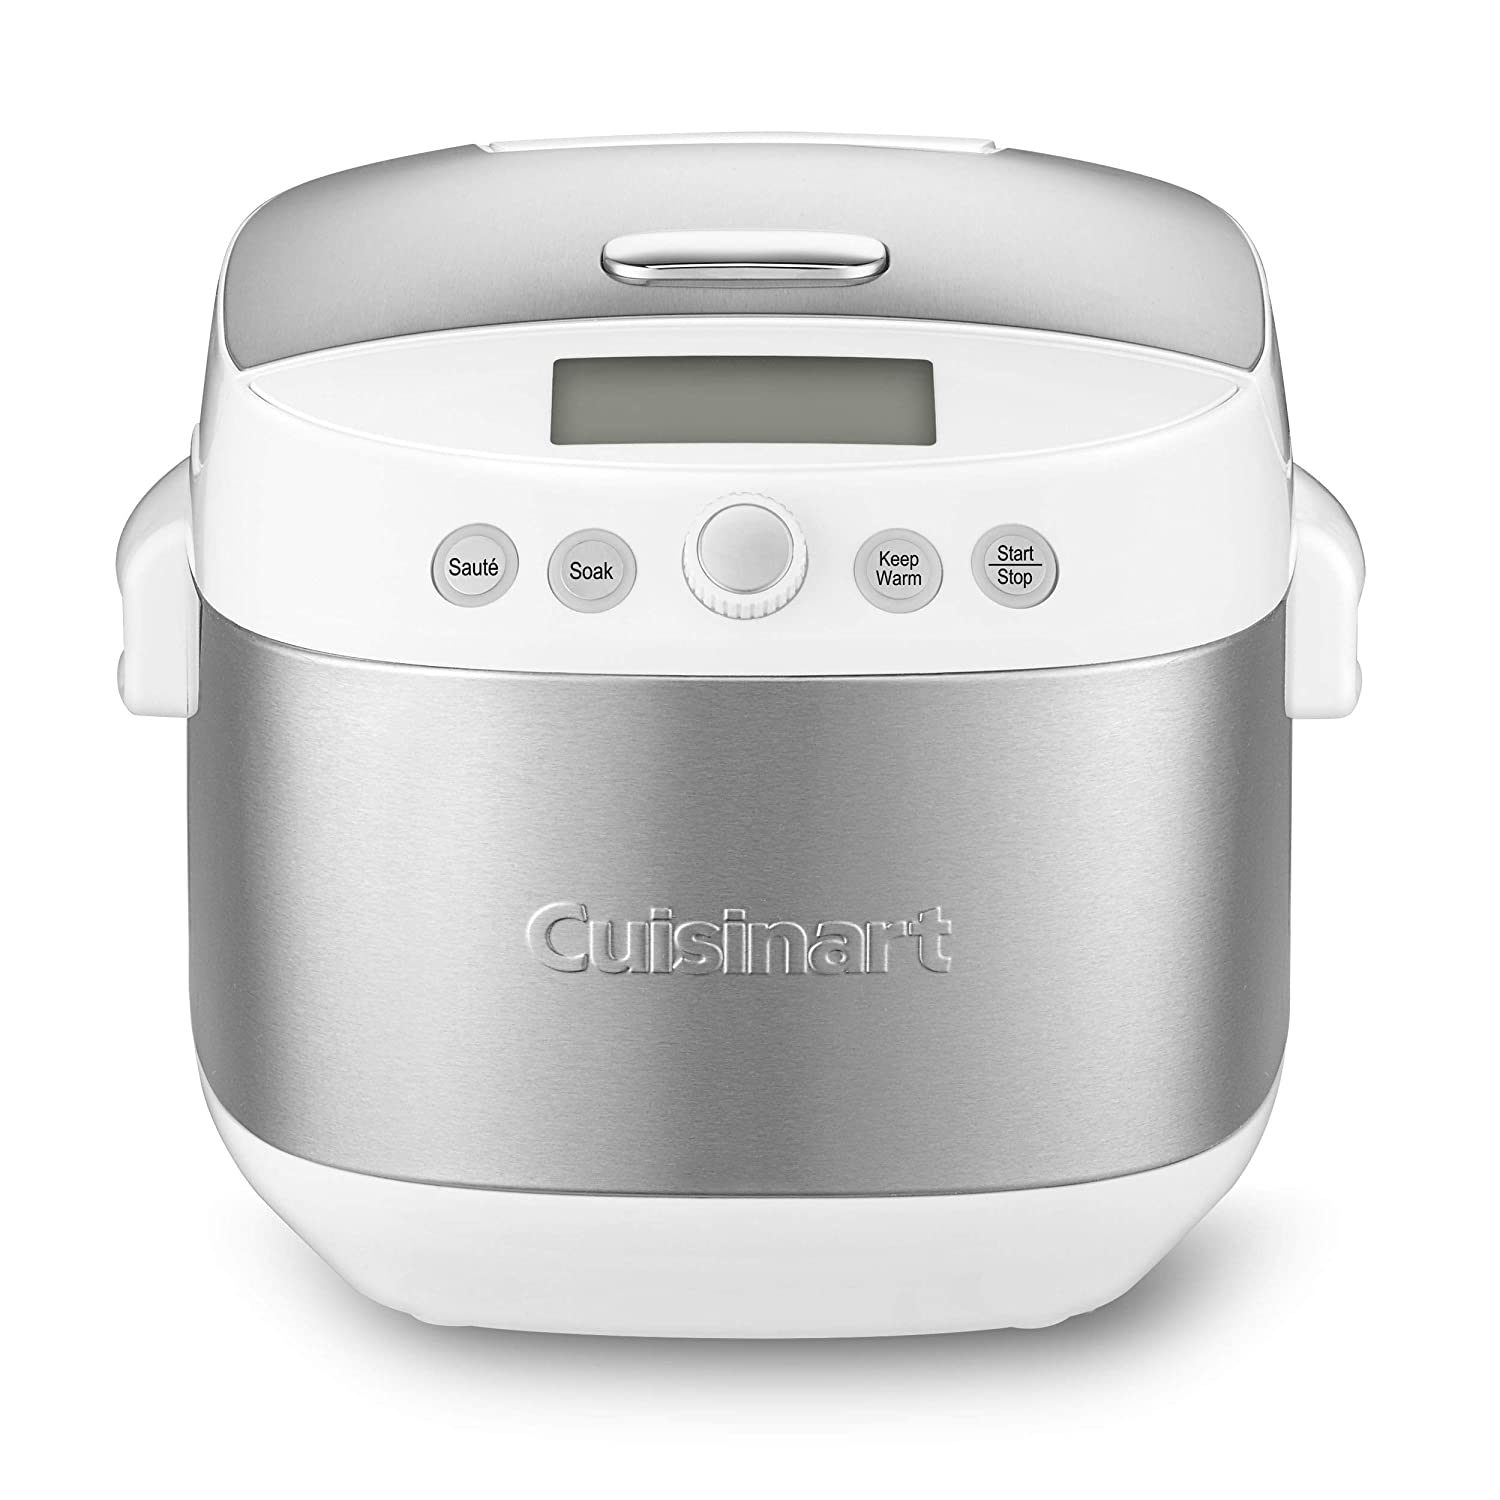 Cuisinart FRC-1000 Rice/Grain Multicooker White